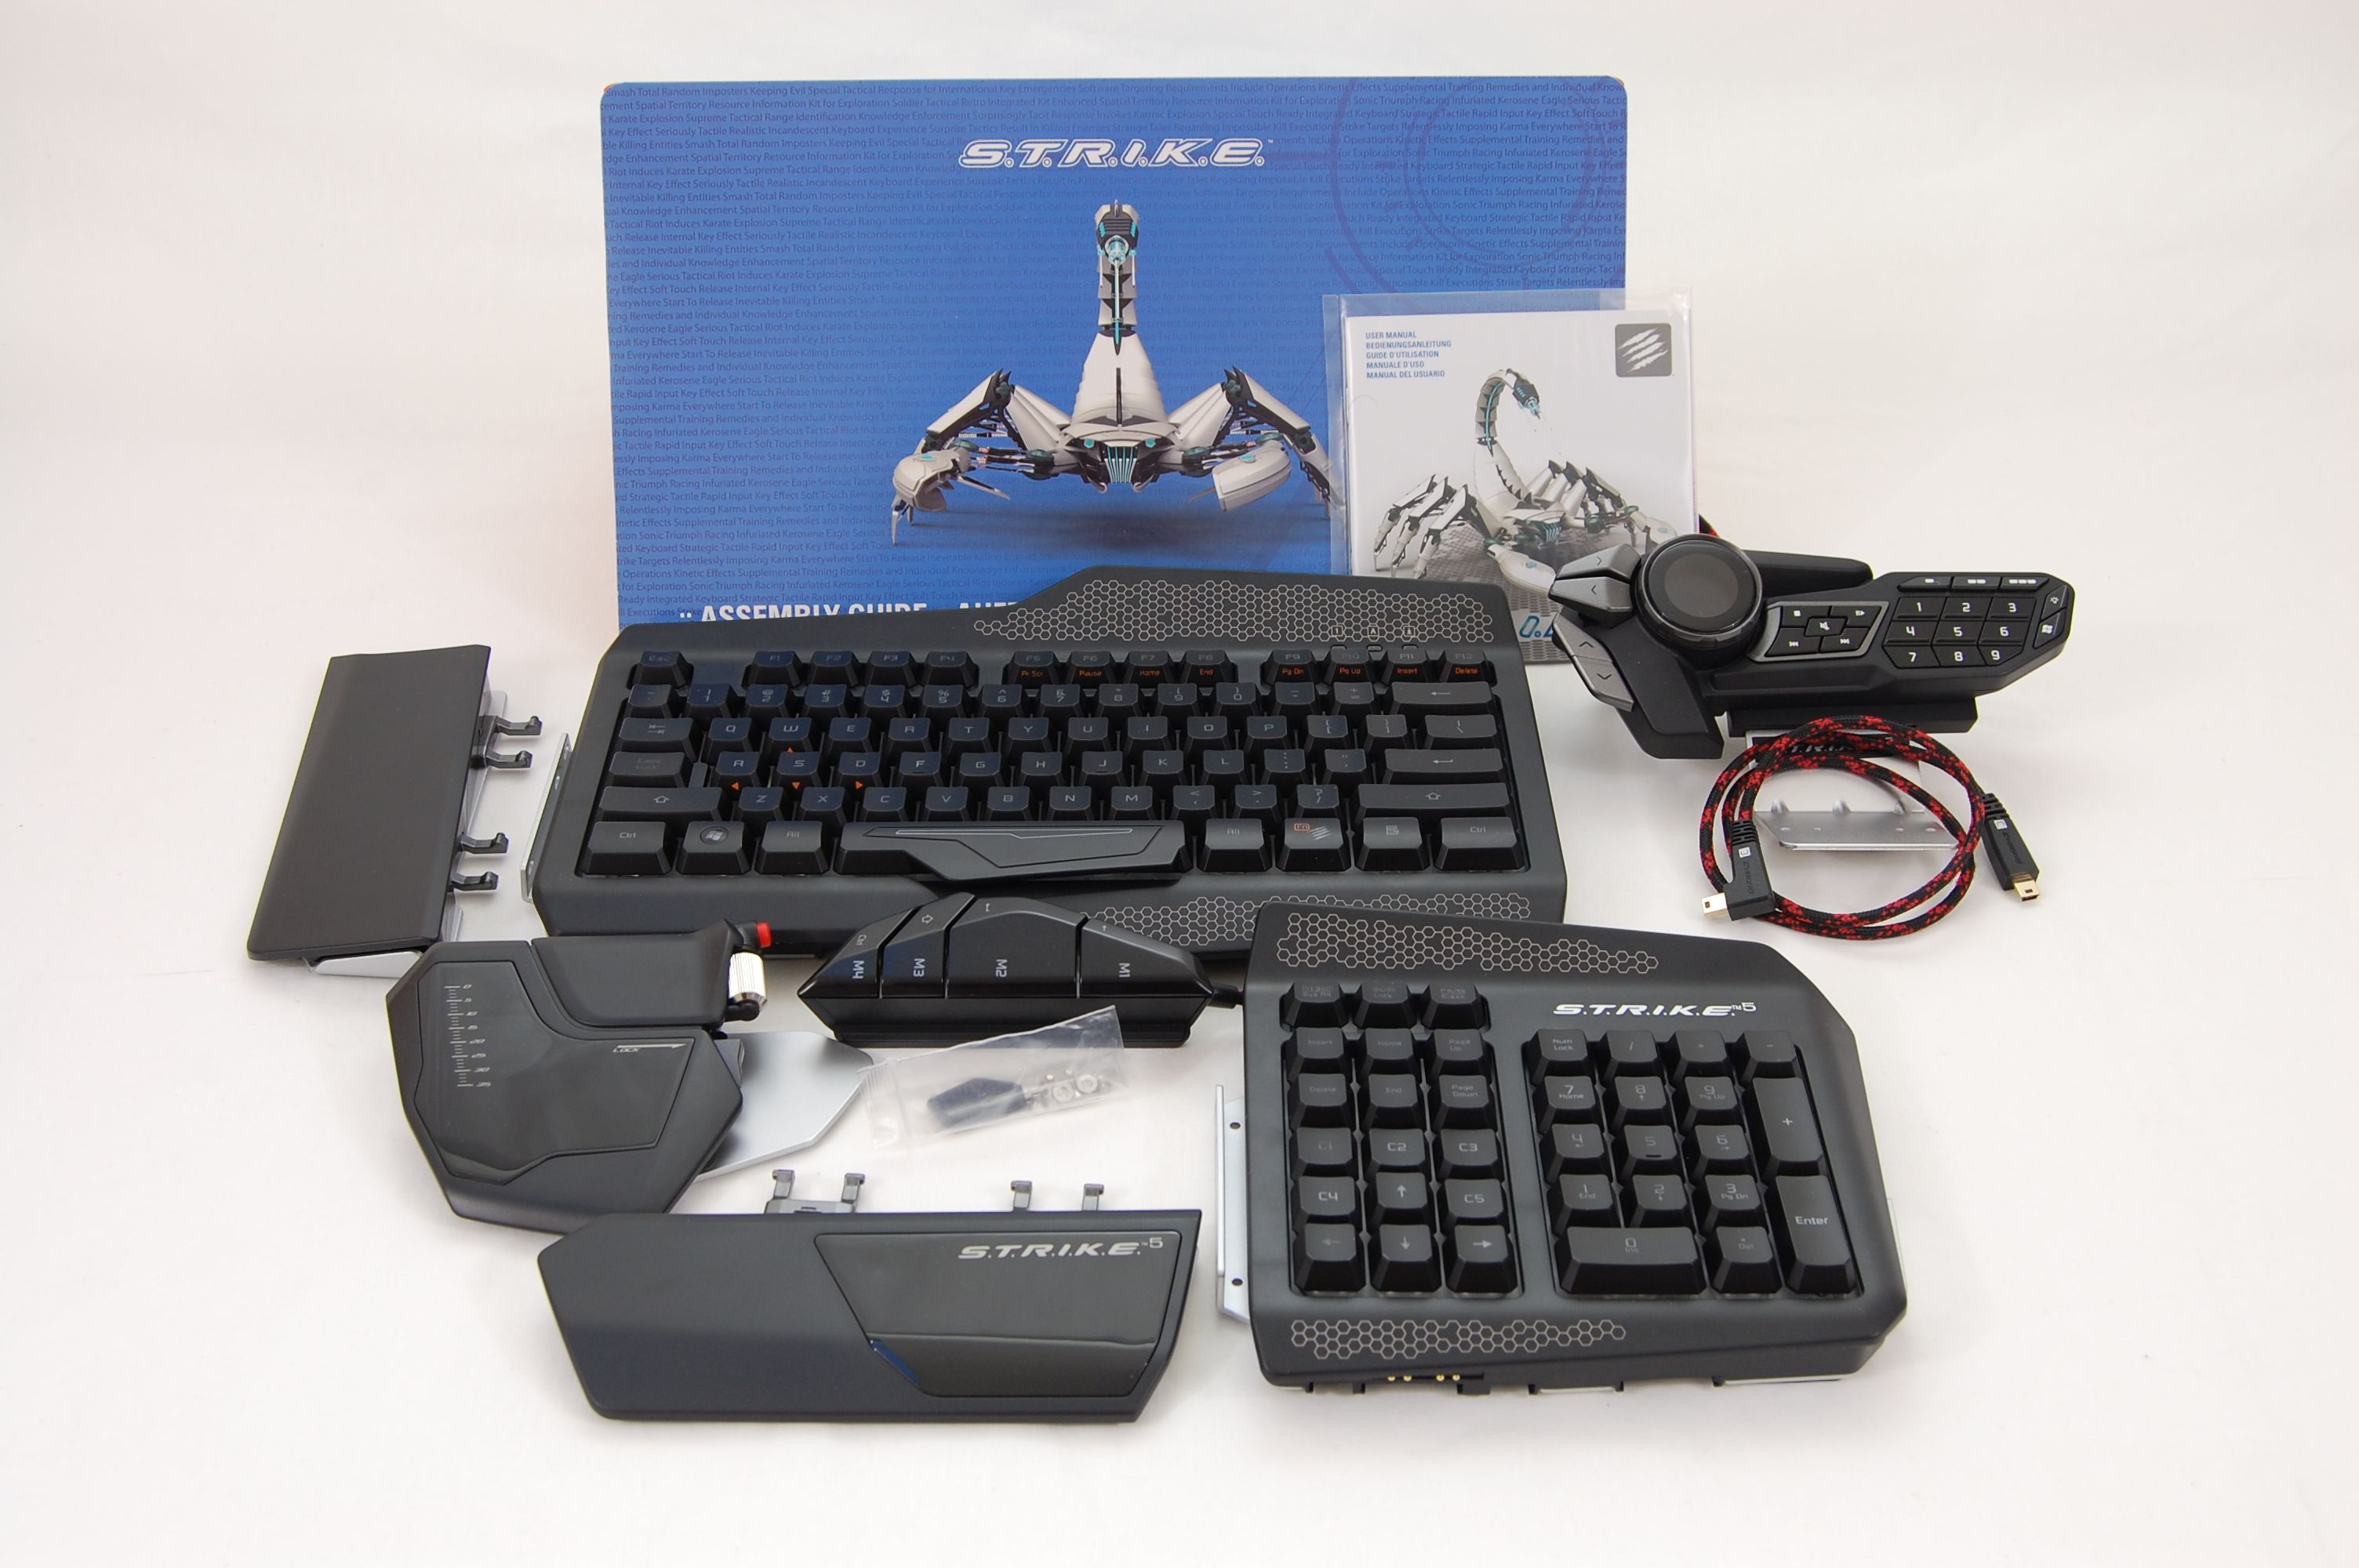 MadCatz-Strike5-Keyboard-Included-Accessories